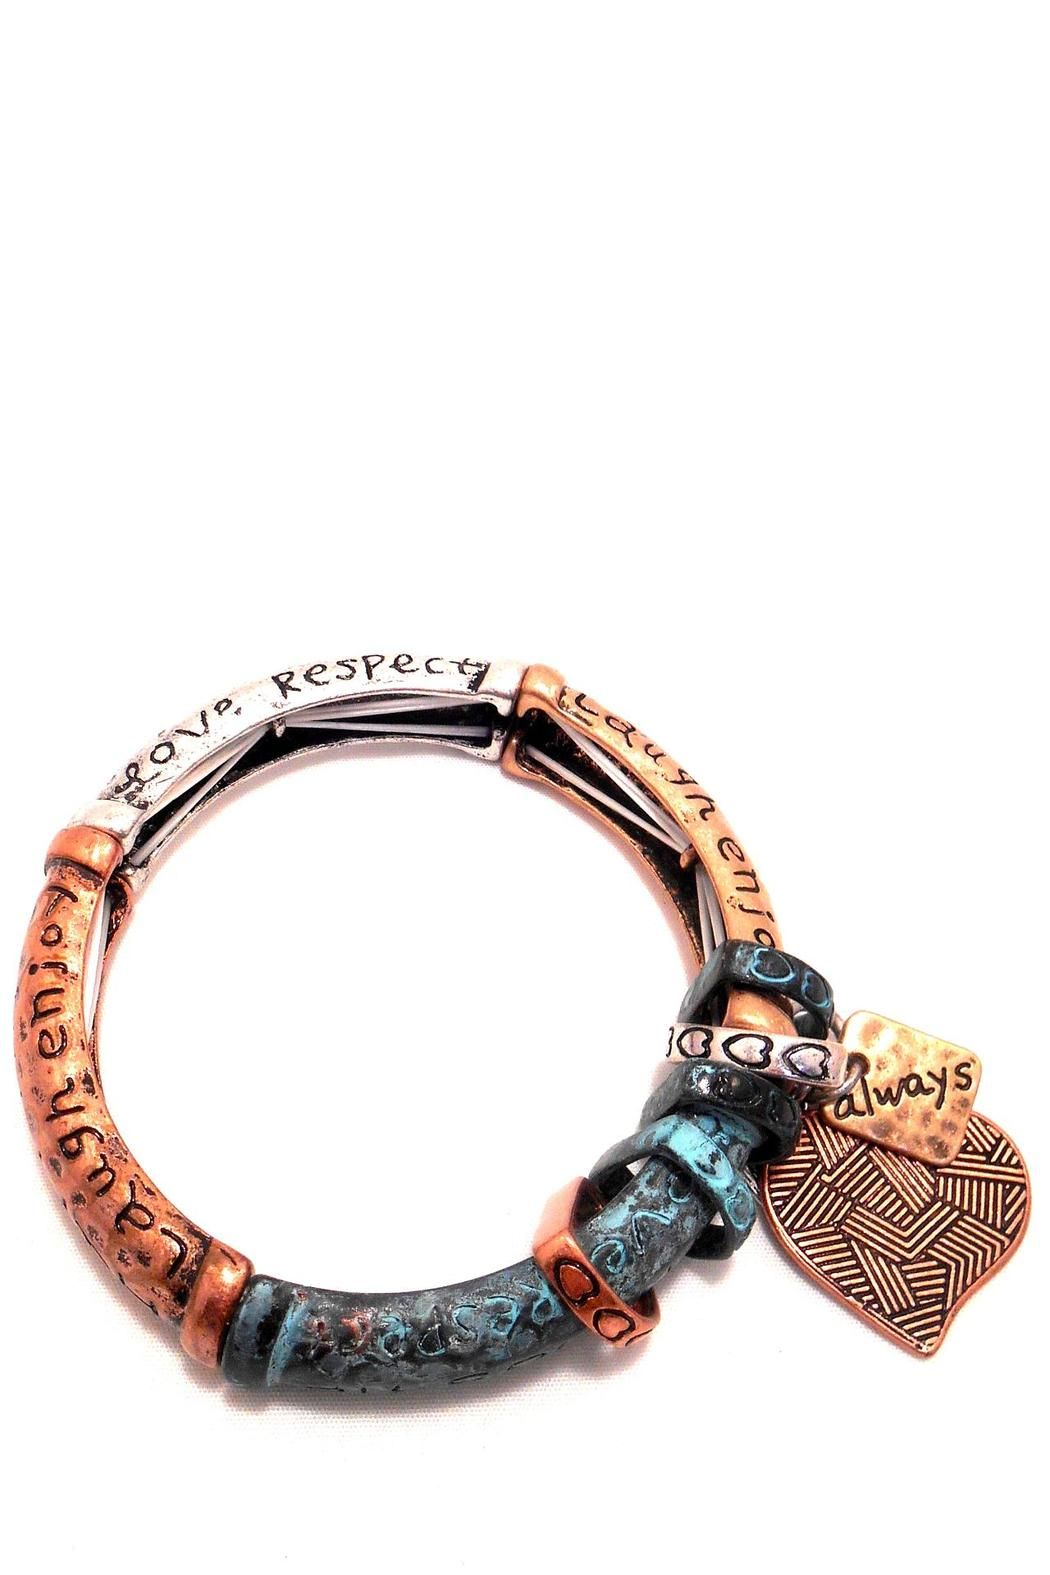 davinci themed bracelet from wisconsin by the chic